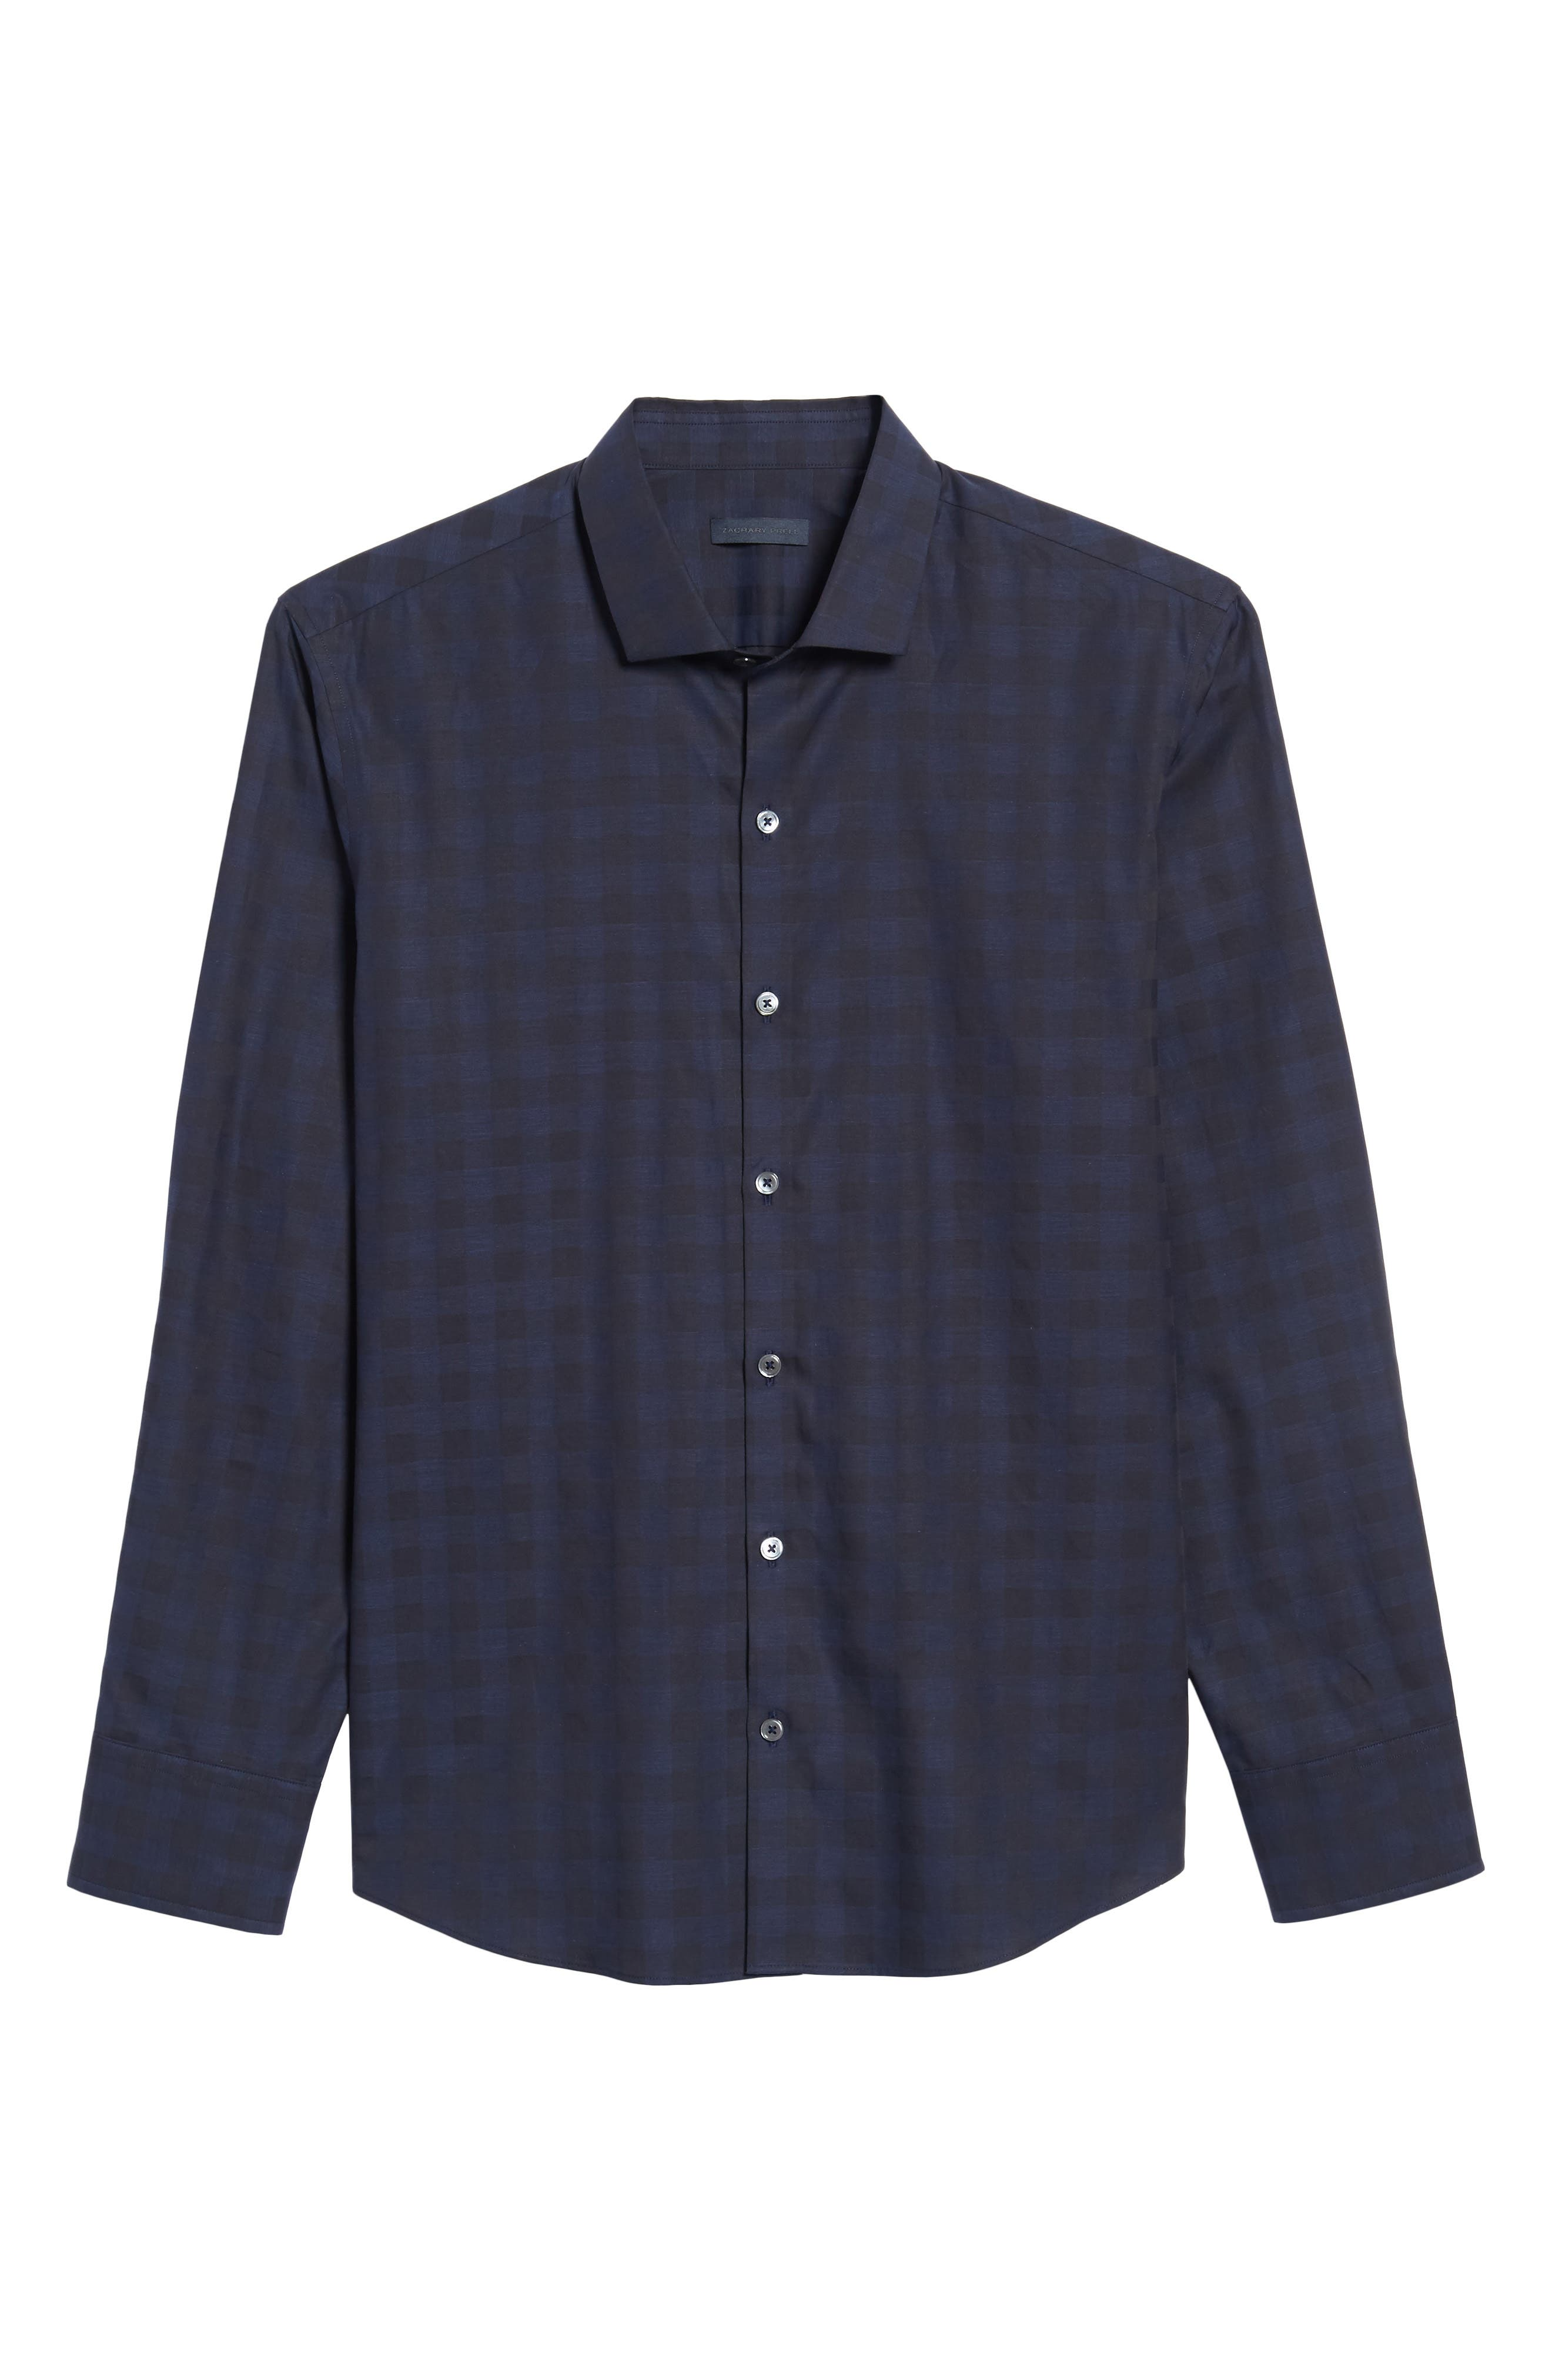 Torres Check Sport Shirt,                             Alternate thumbnail 6, color,                             Navy